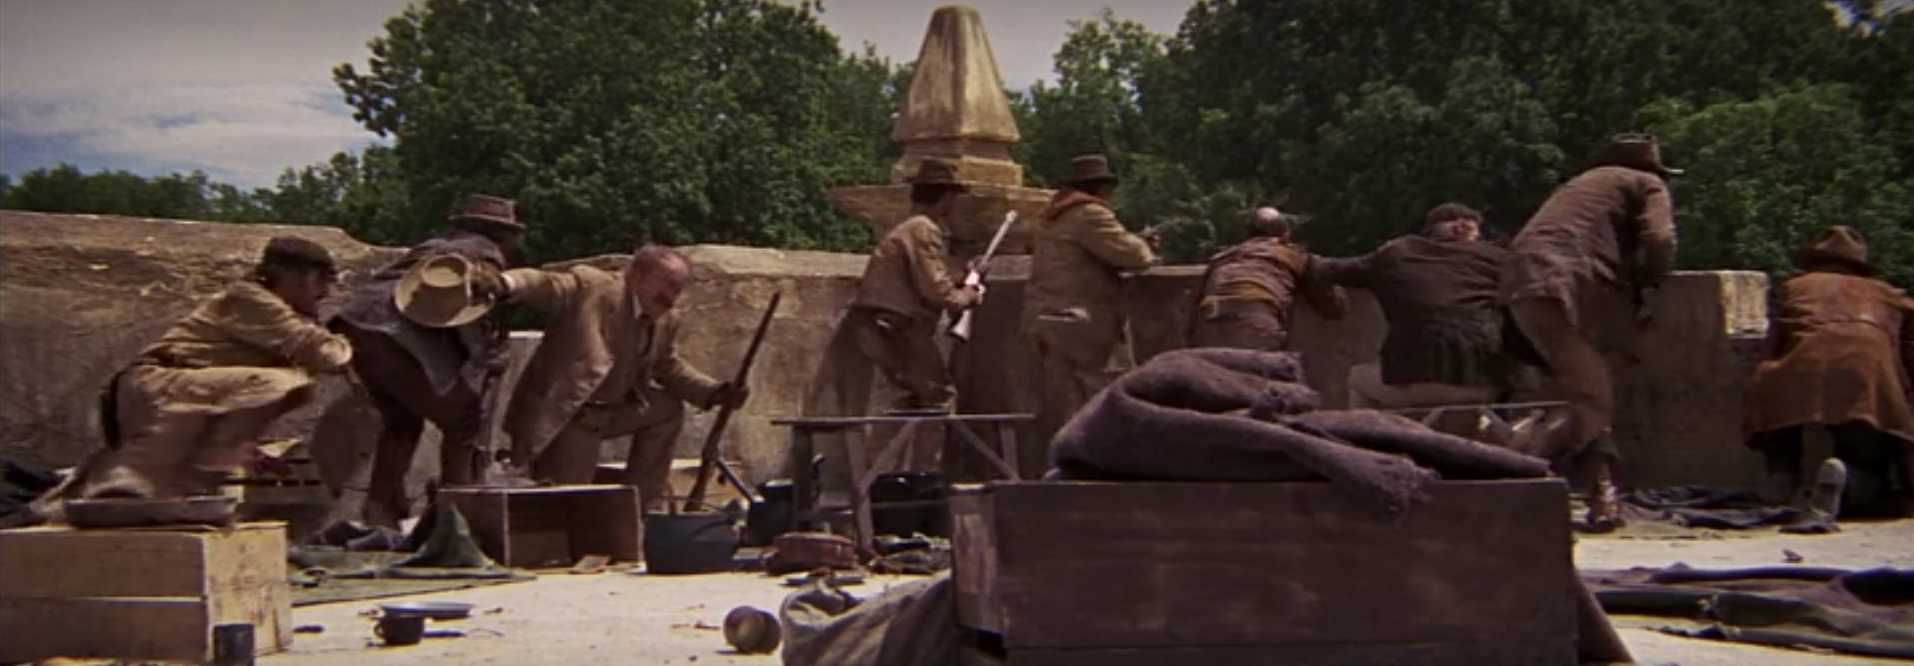 The Wild Bunch, Warner Brothers, 1969